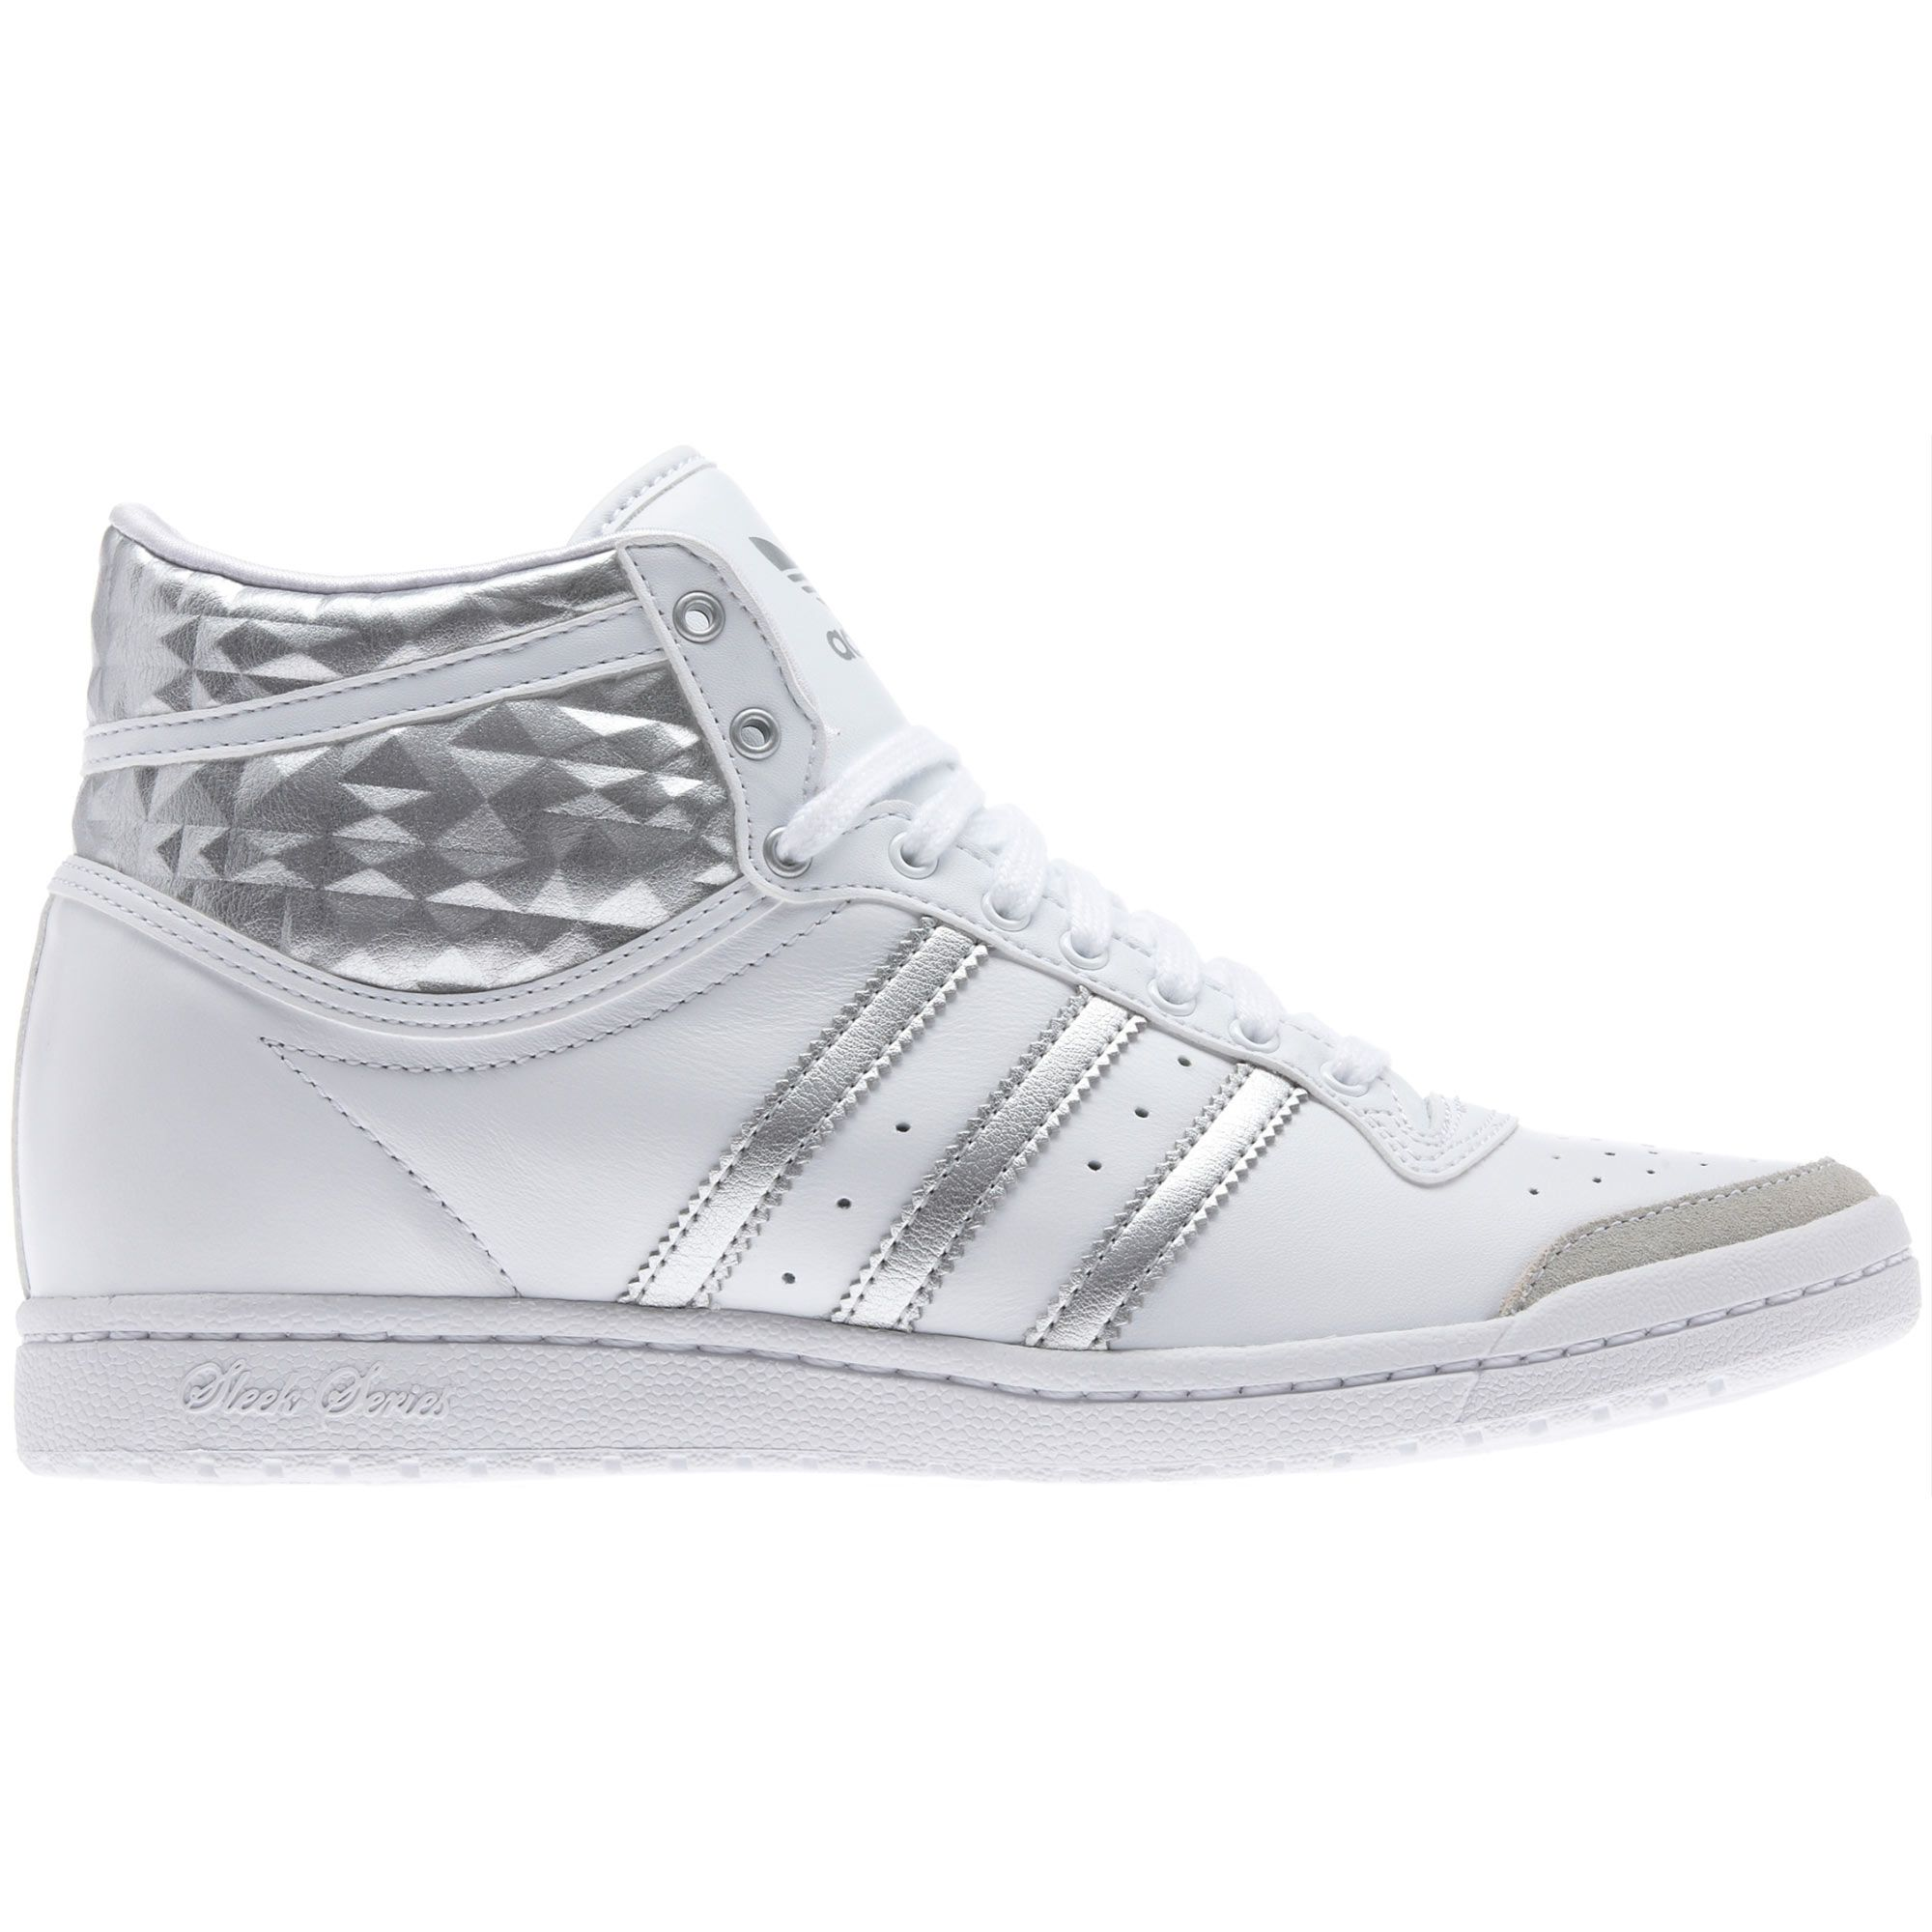 online store 89332 0a441 adidas Women s Top Ten Hi Sleek Up Shoes   adidas UK